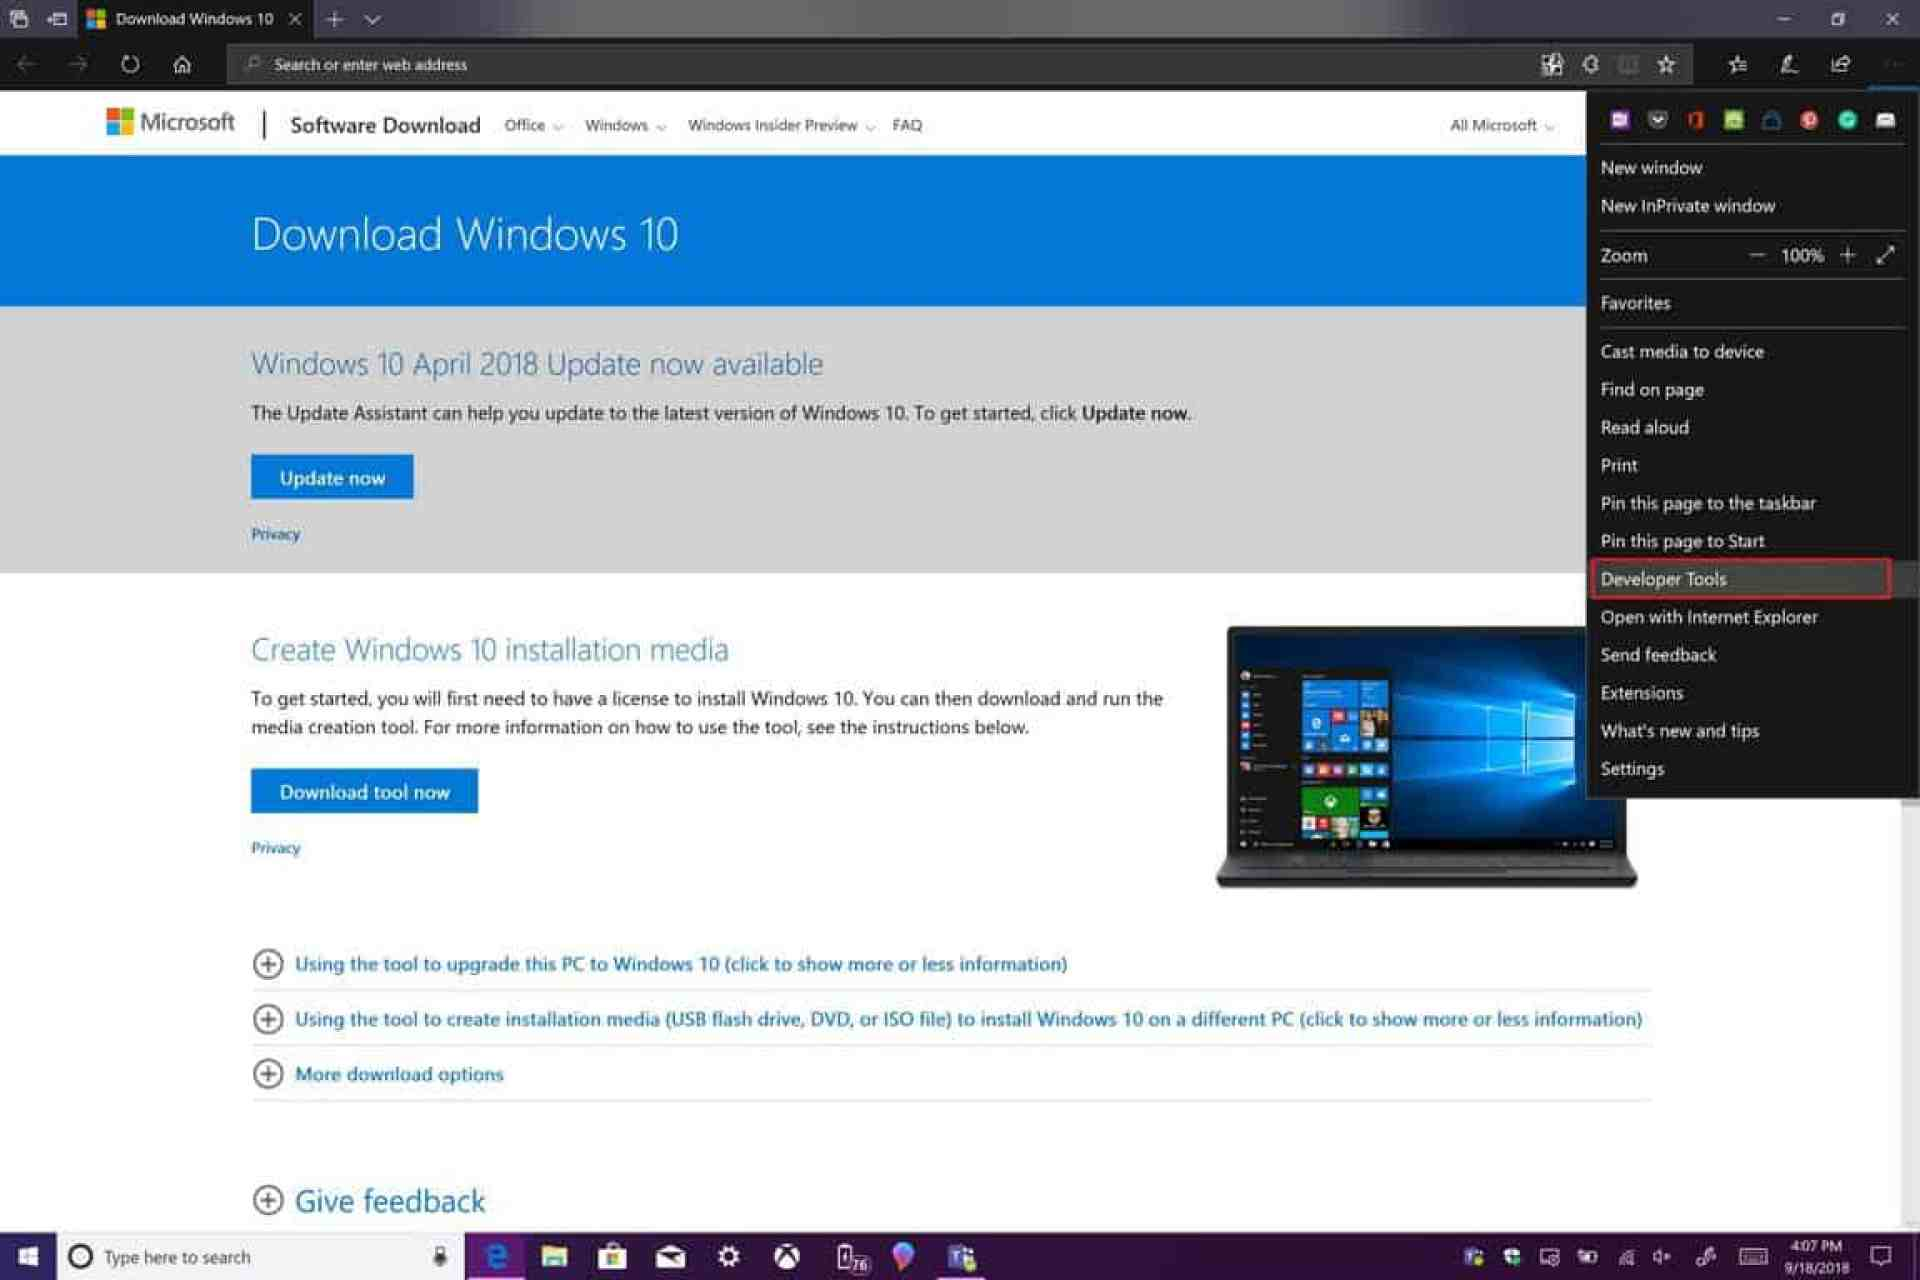 download windows product key tool